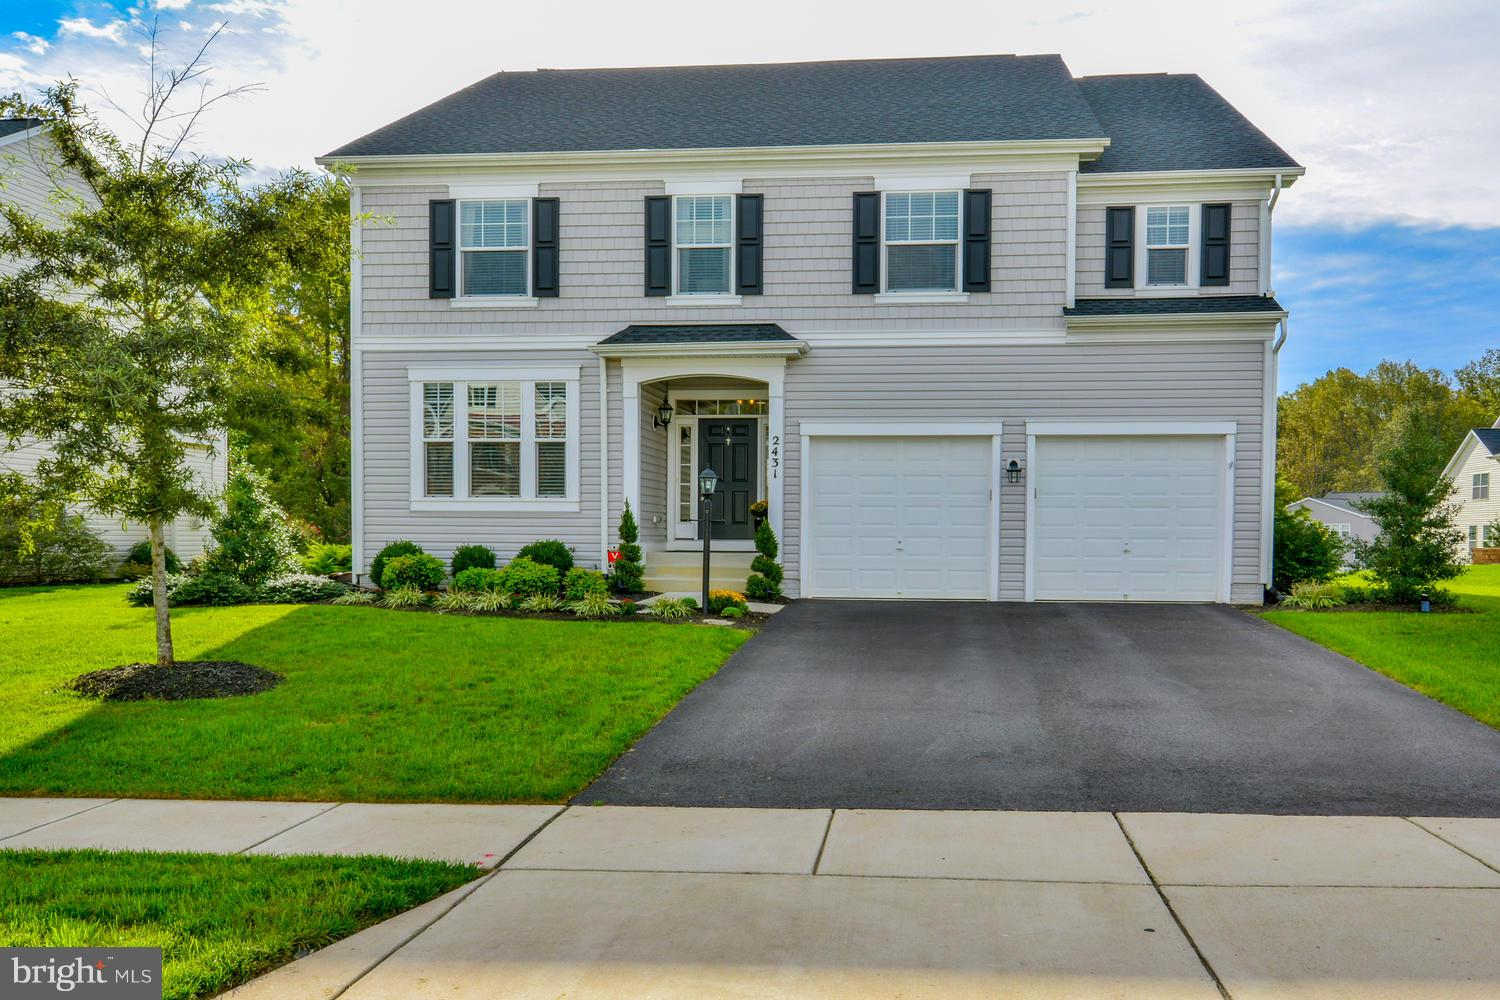 2431 MACALLISTER LANE, Gambrills, MD 21054